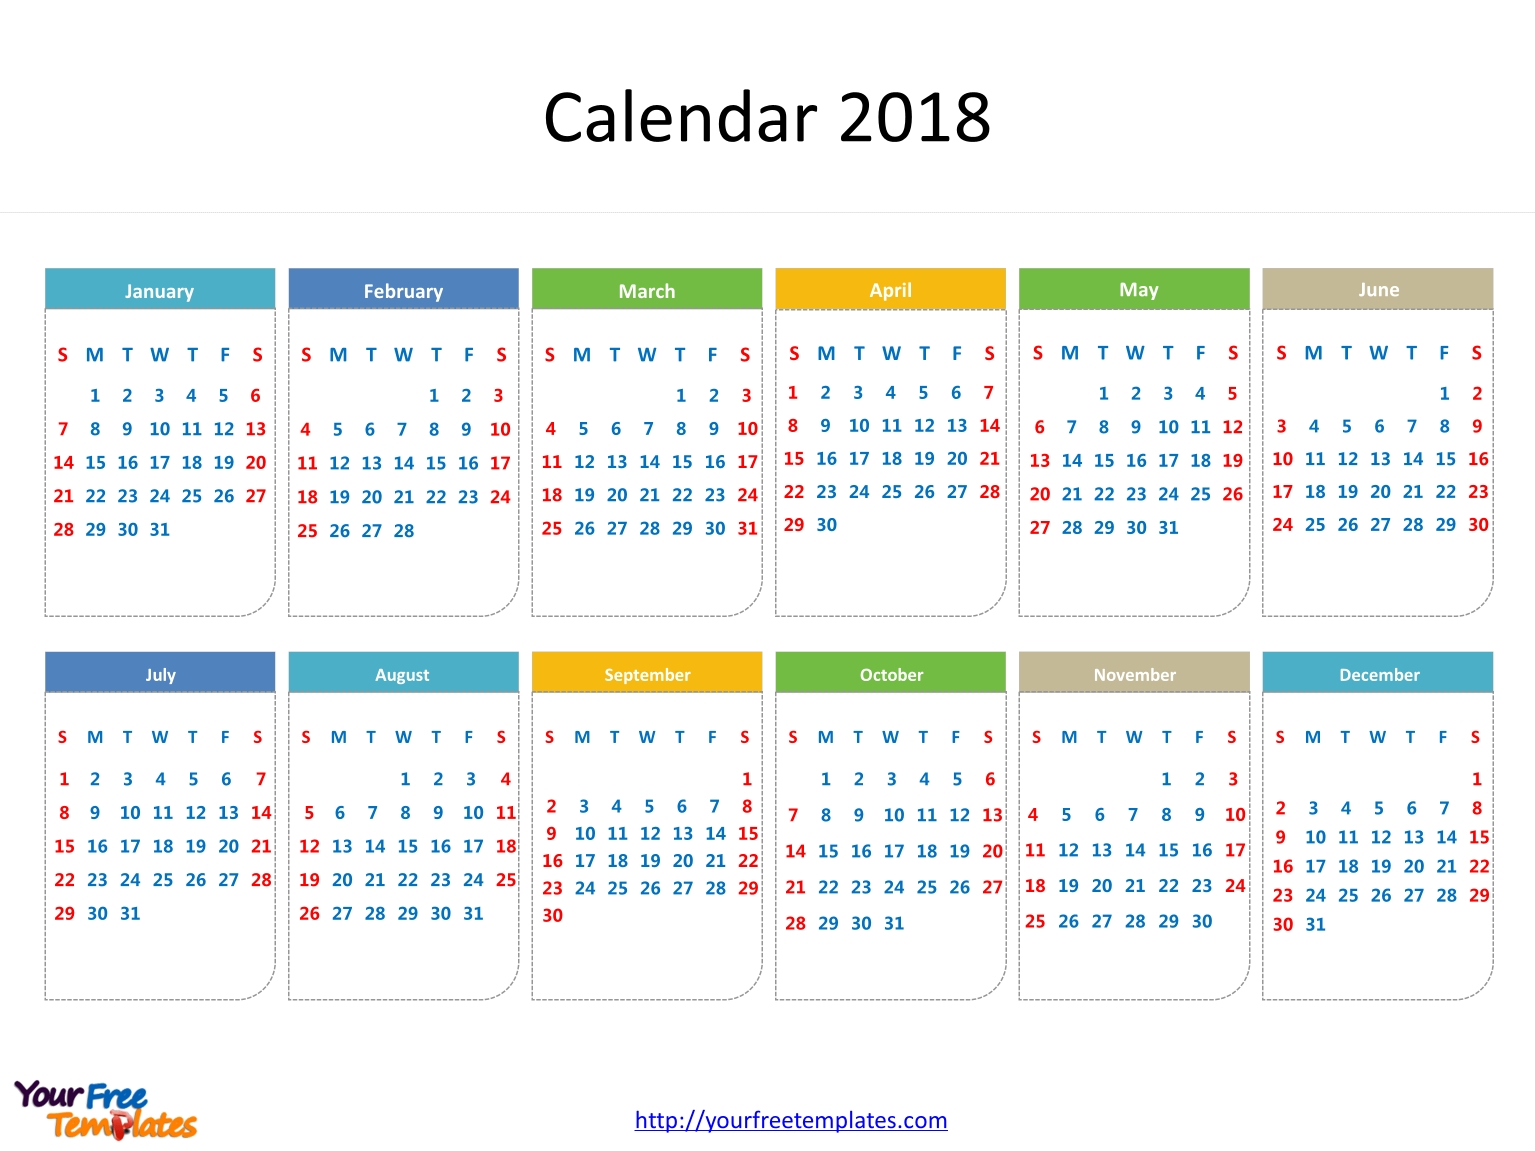 Printable Calendar 2018 - Free Powerpoint Templates with Printable Date To Date Calendar